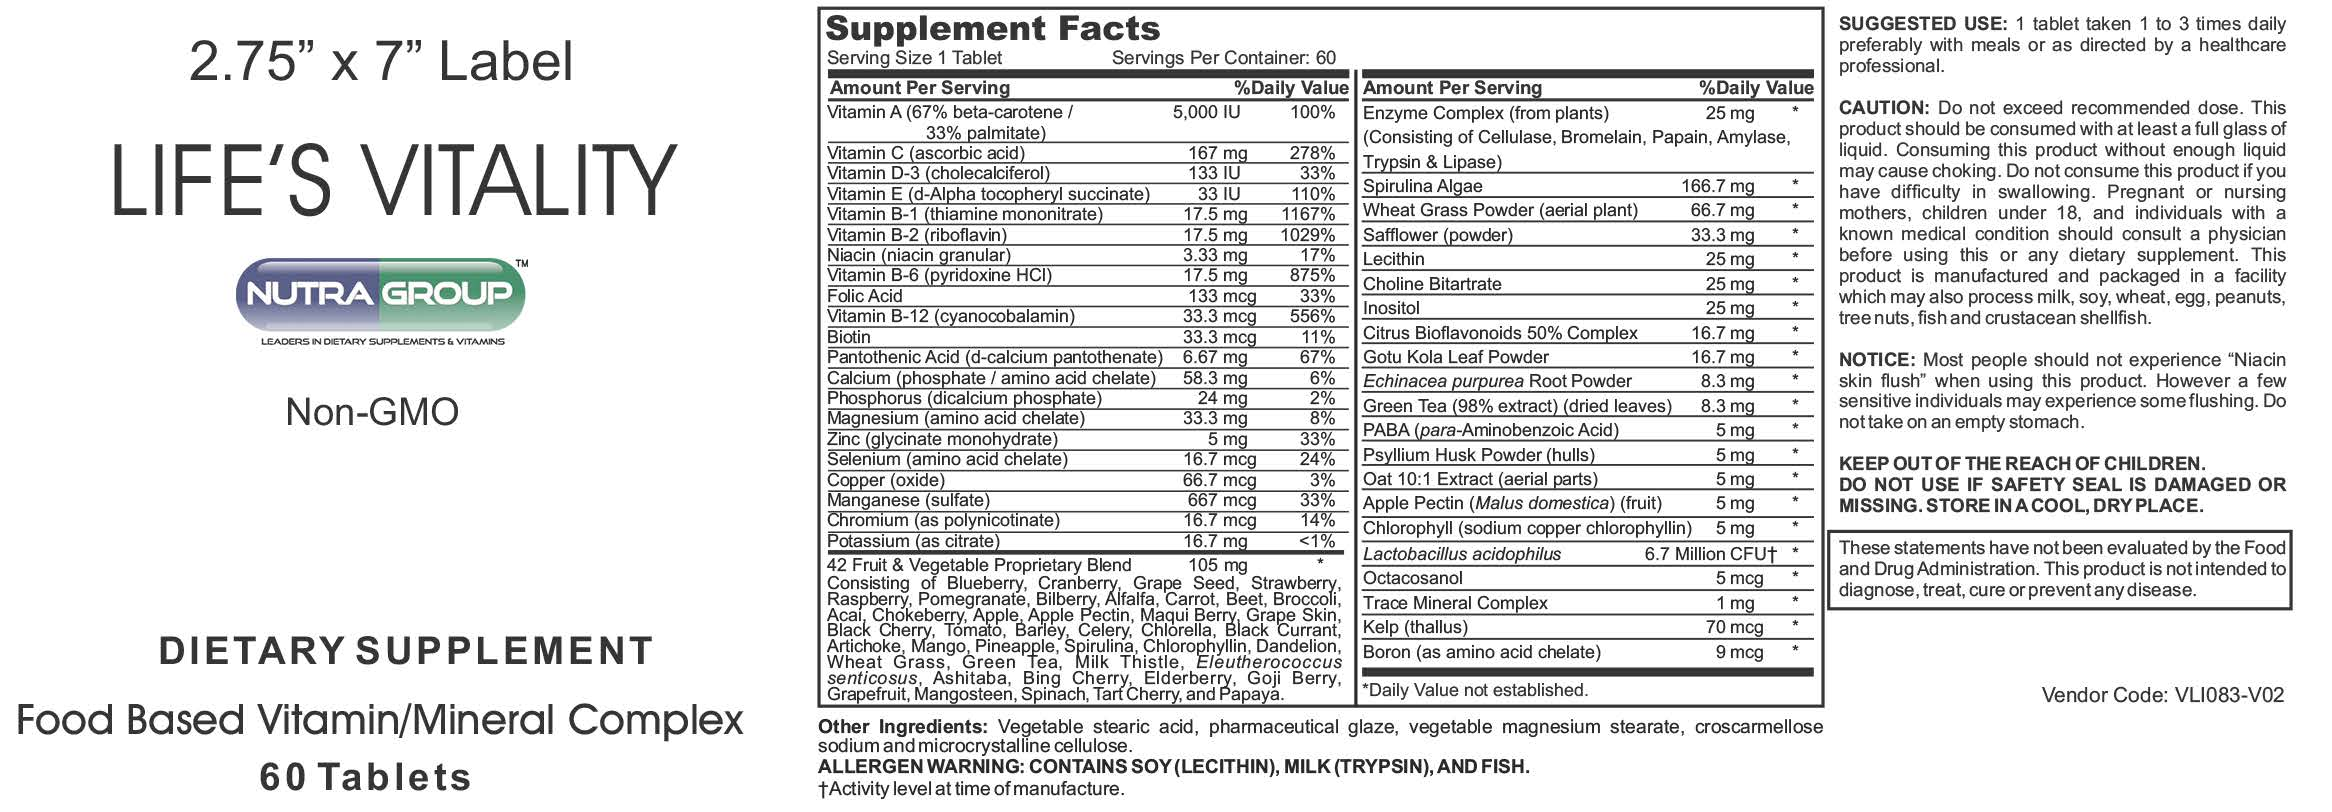 Private label Vitality supplements